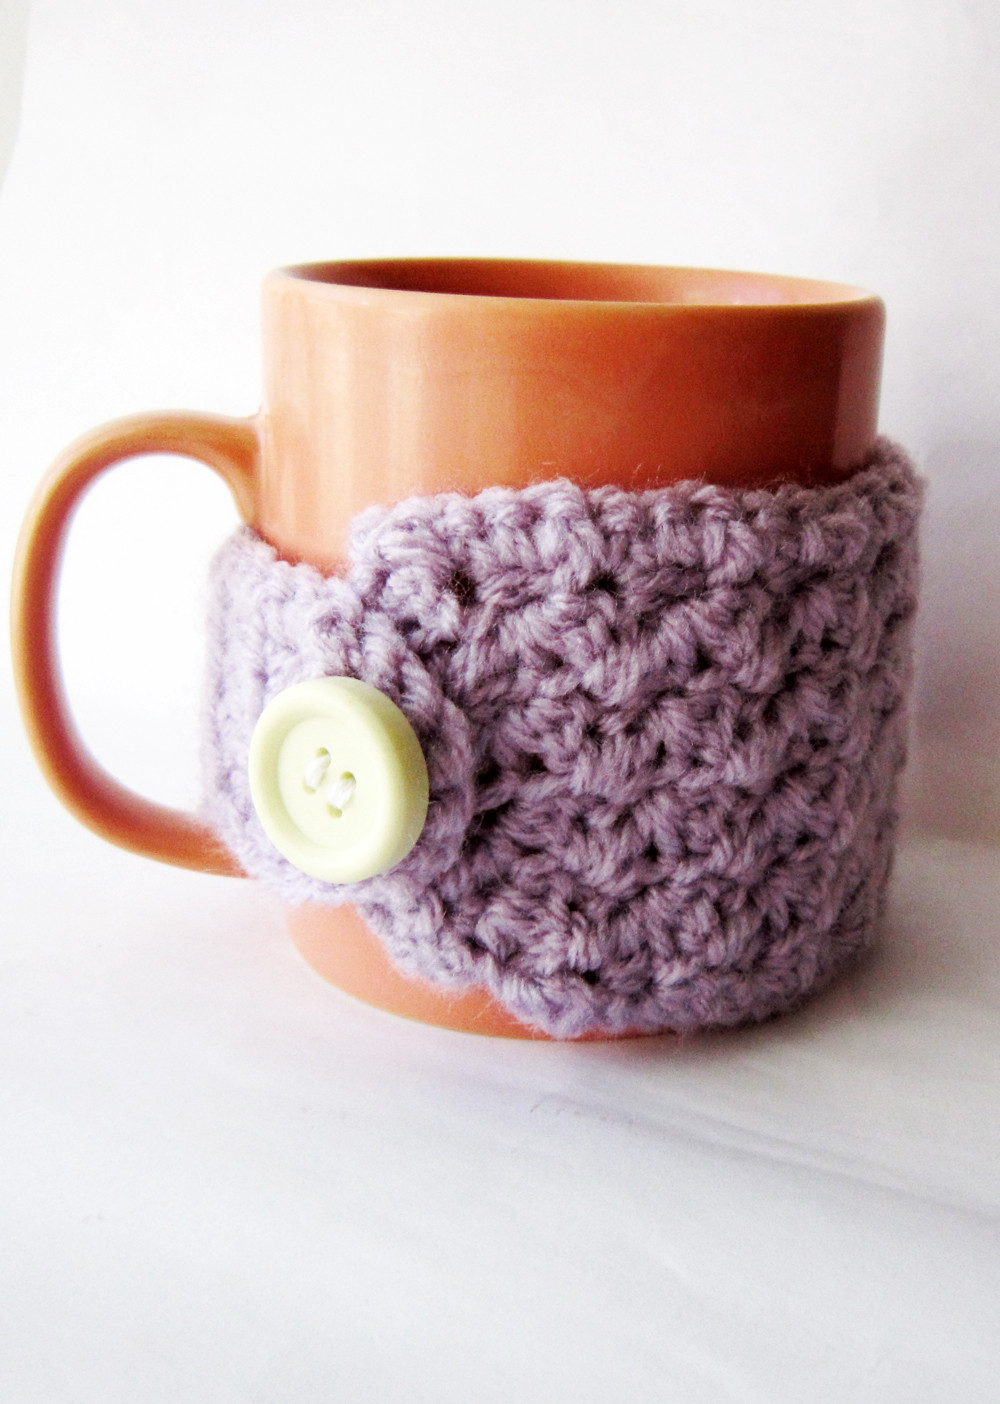 Crochet Coffee Cup Cozy Inspirational Easy Crochet Mug Cozy Free Pattern Akamatra Of Crochet Coffee Cup Cozy Inspirational 35 Easy Crochet Patterns